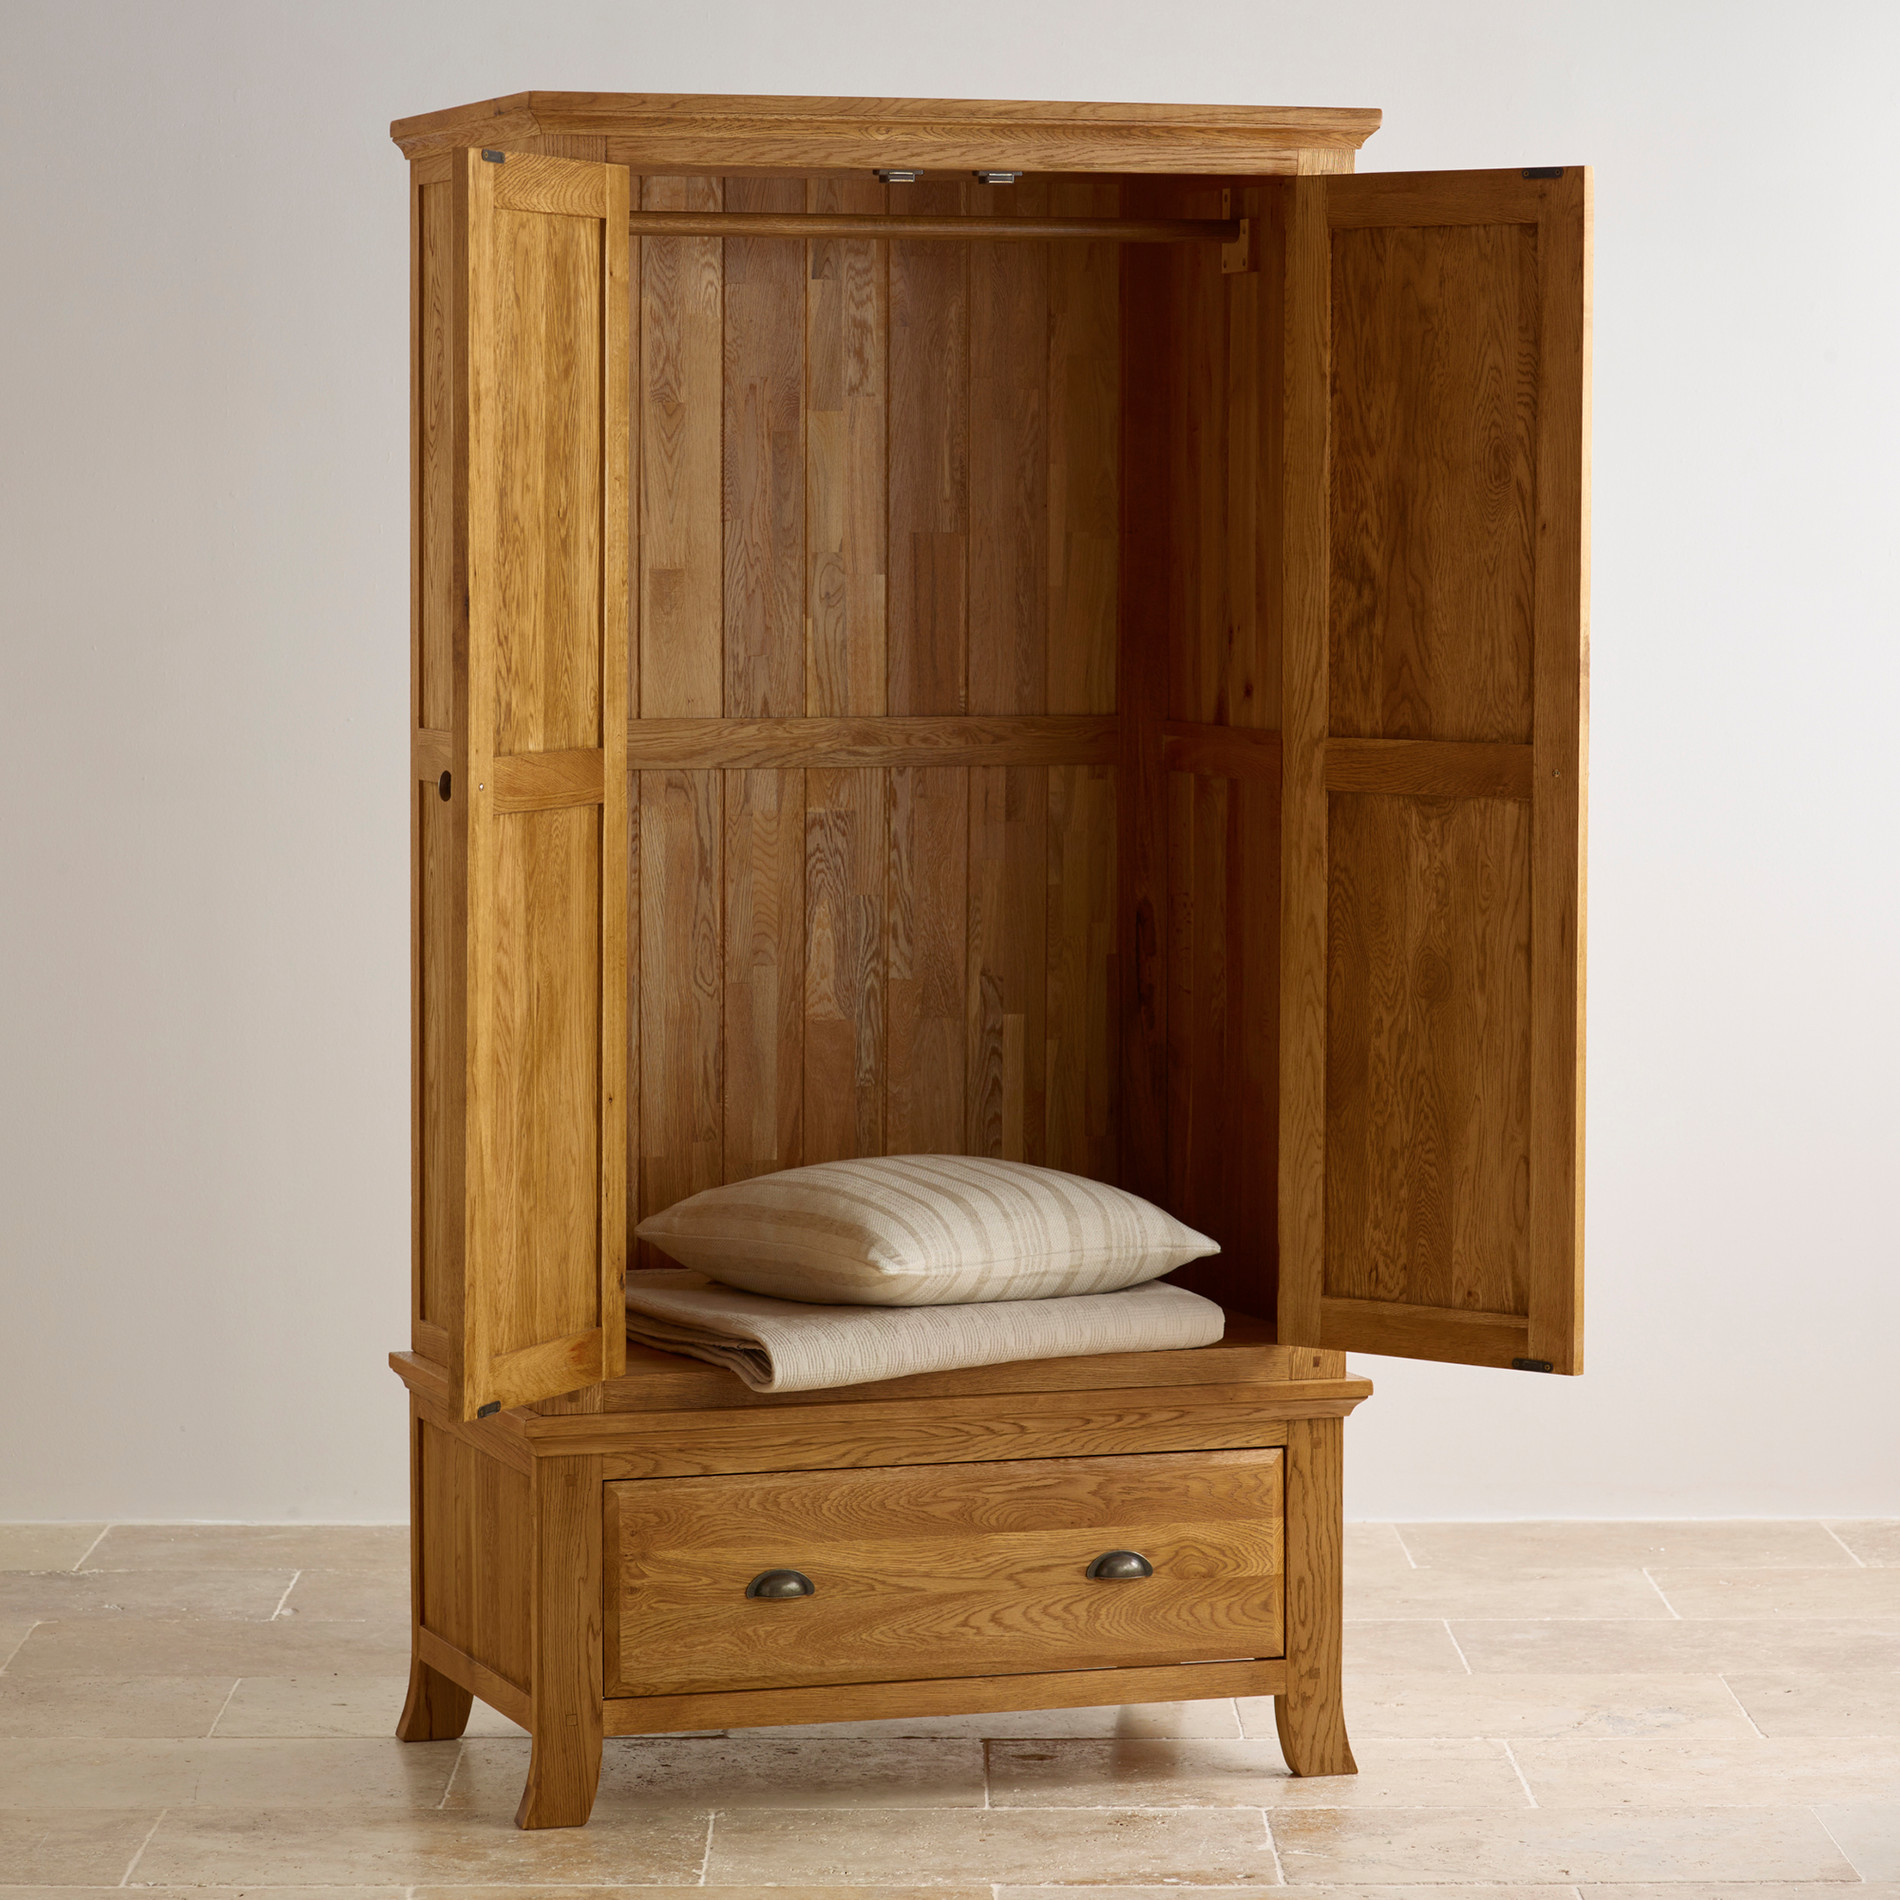 beautiful solid oak double wardrobe. Black Bedroom Furniture Sets. Home Design Ideas